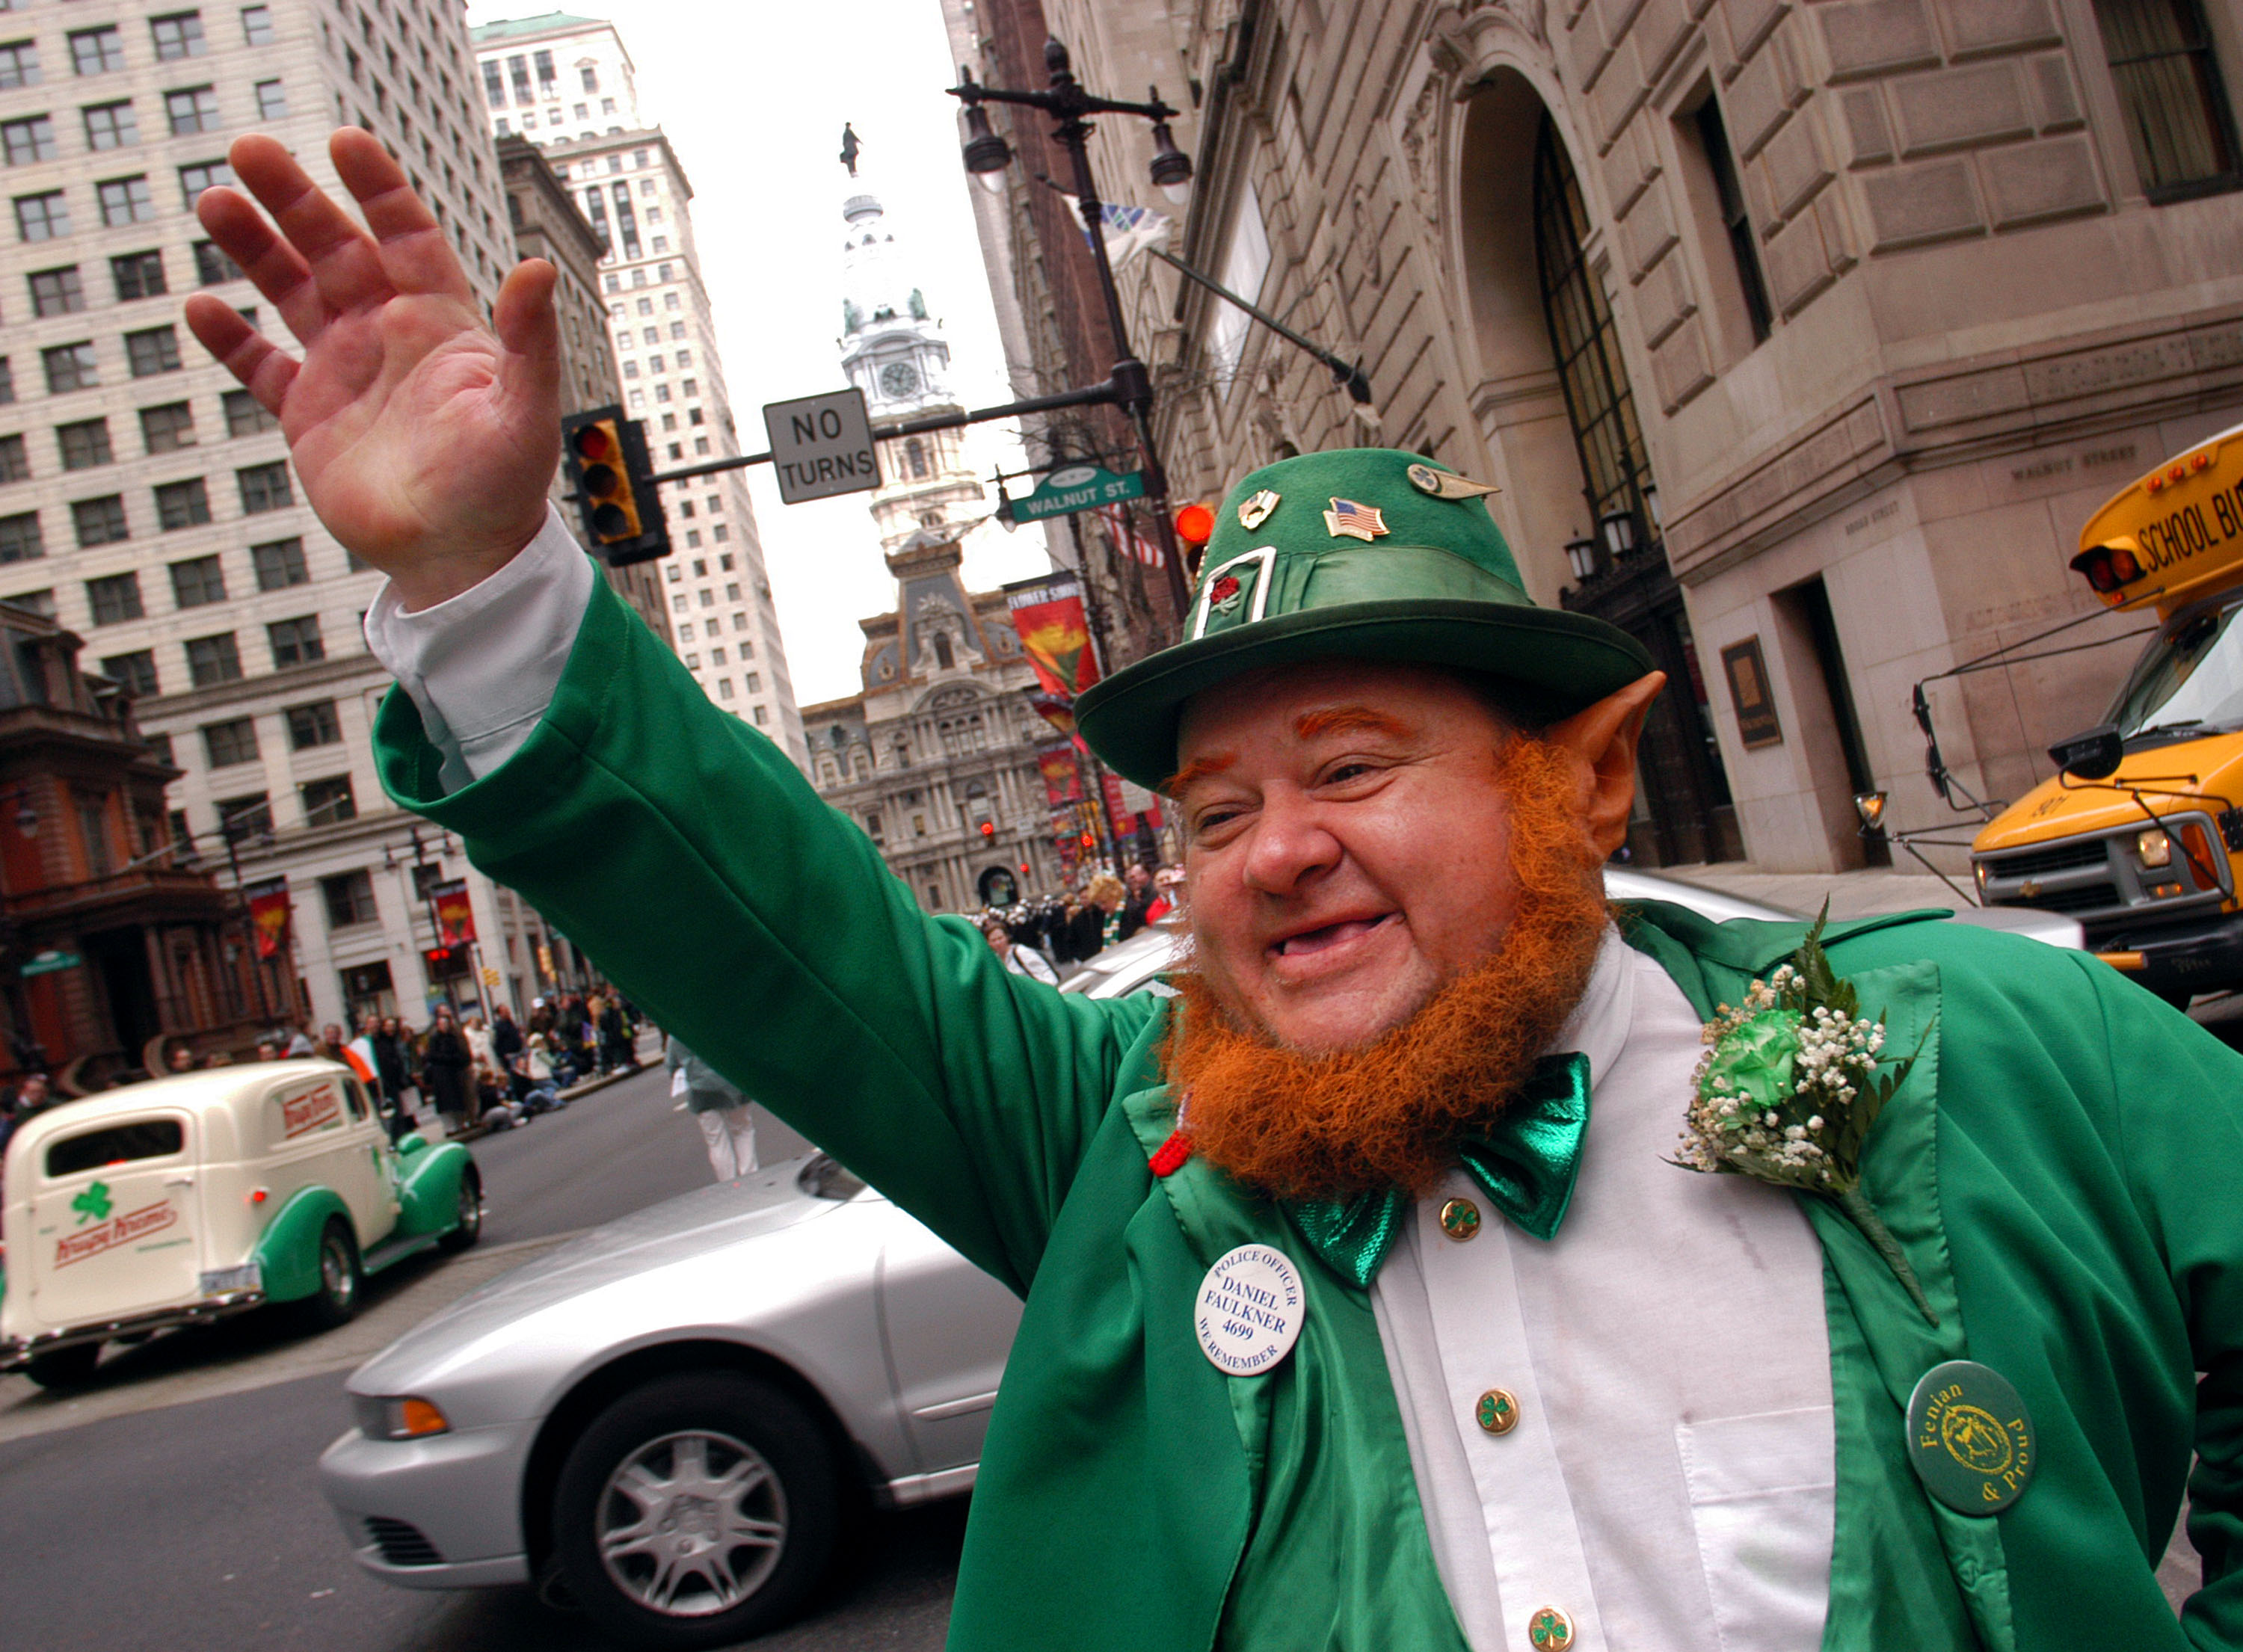 Philadelphia Holds Its 53rd Annual St. Patrick's Day Parade